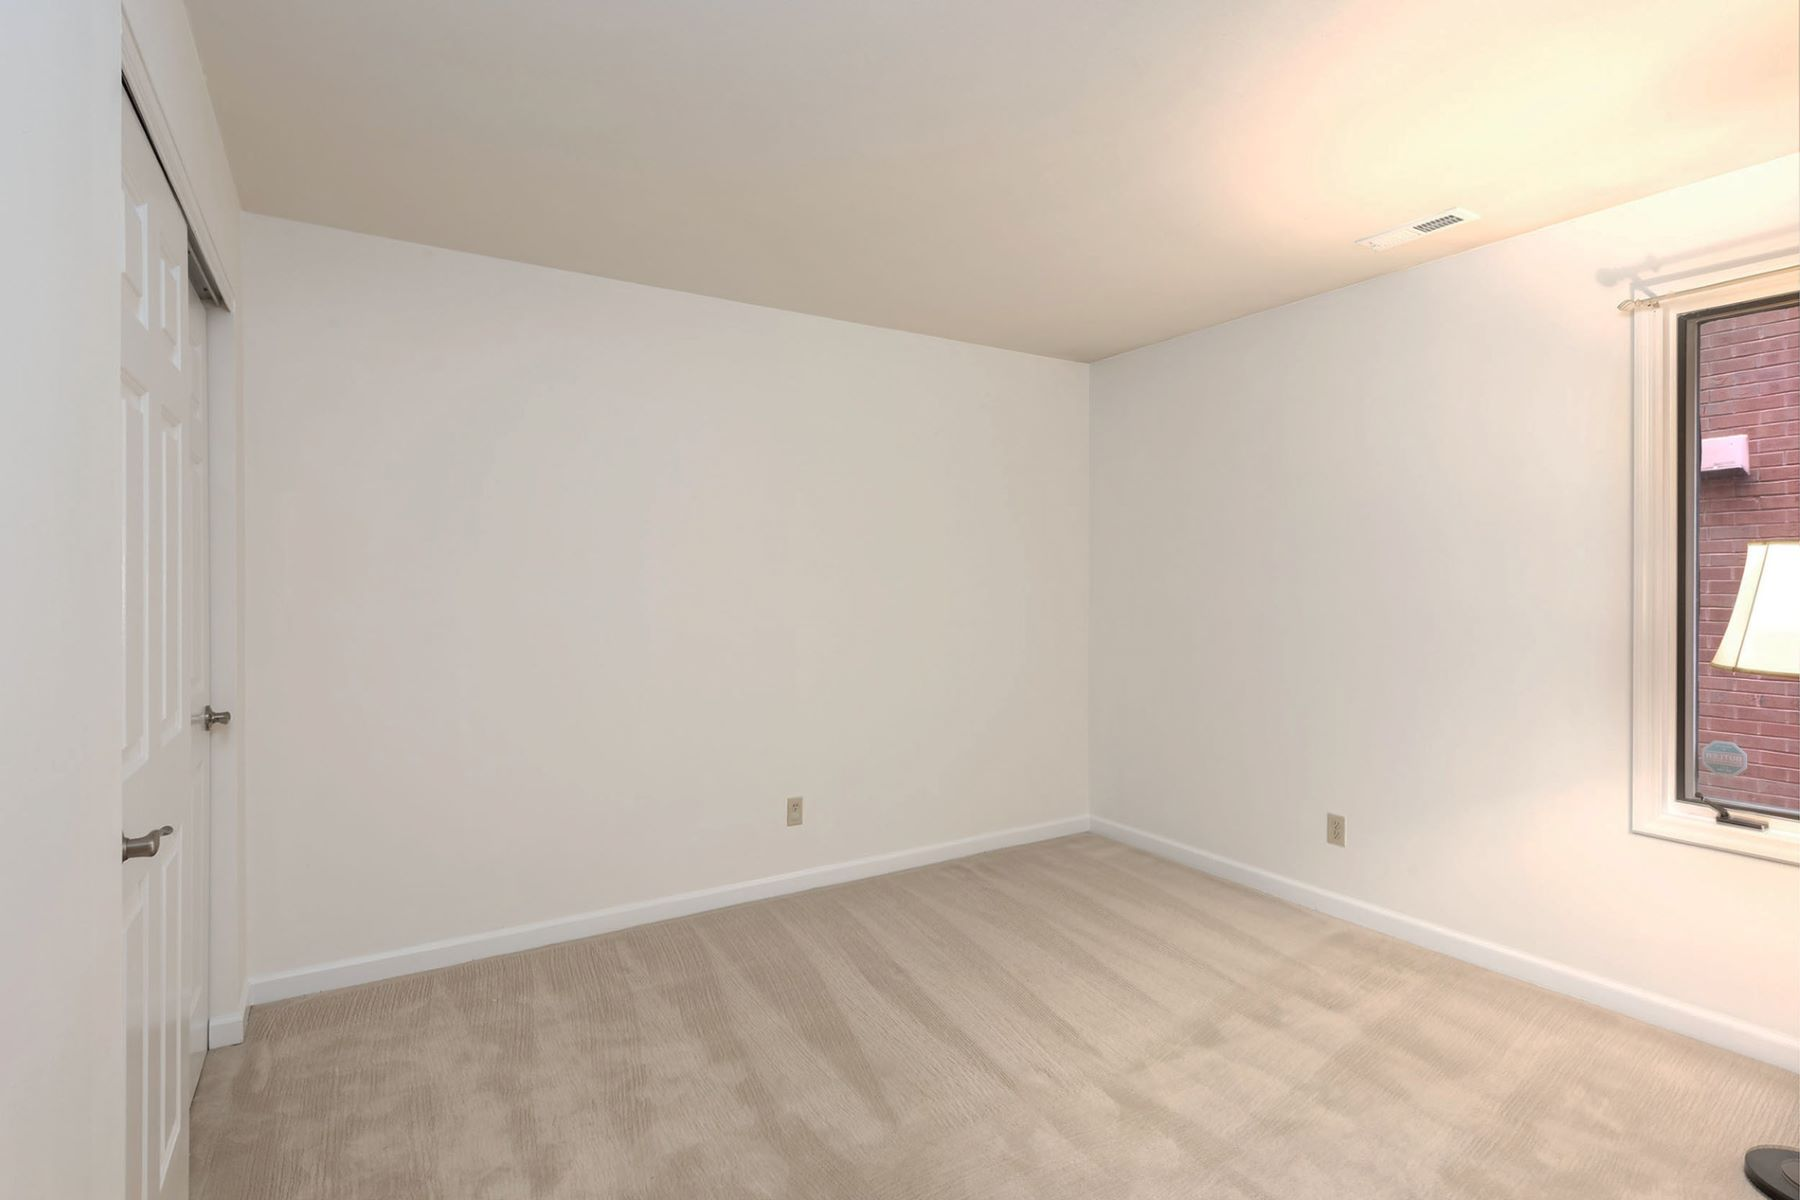 Additional photo for property listing at Laclede Ave 4540 Laclede Ave # 107 St. Louis, Missouri 63108 United States